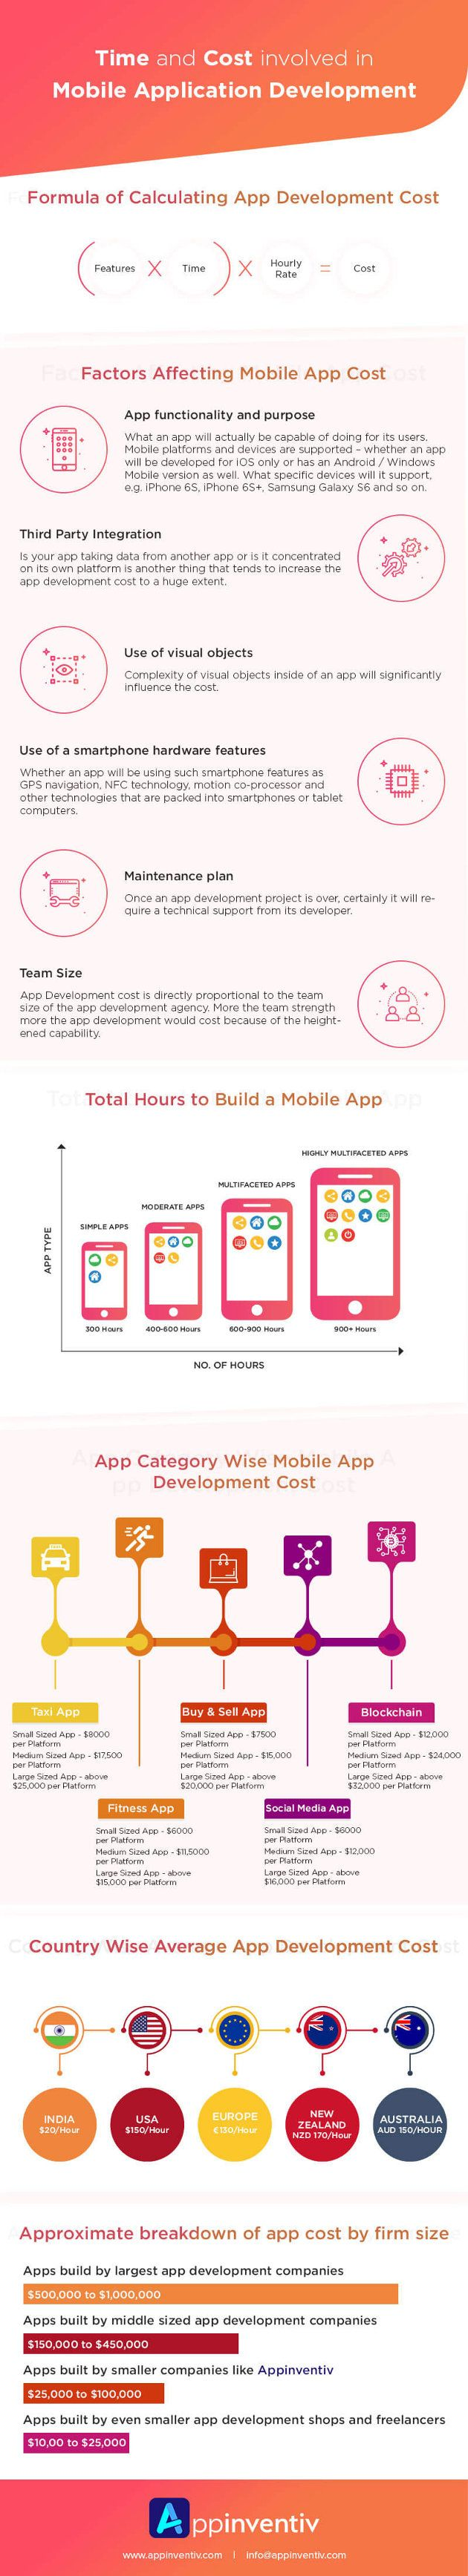 The Time and Cost of Mobile Application Development